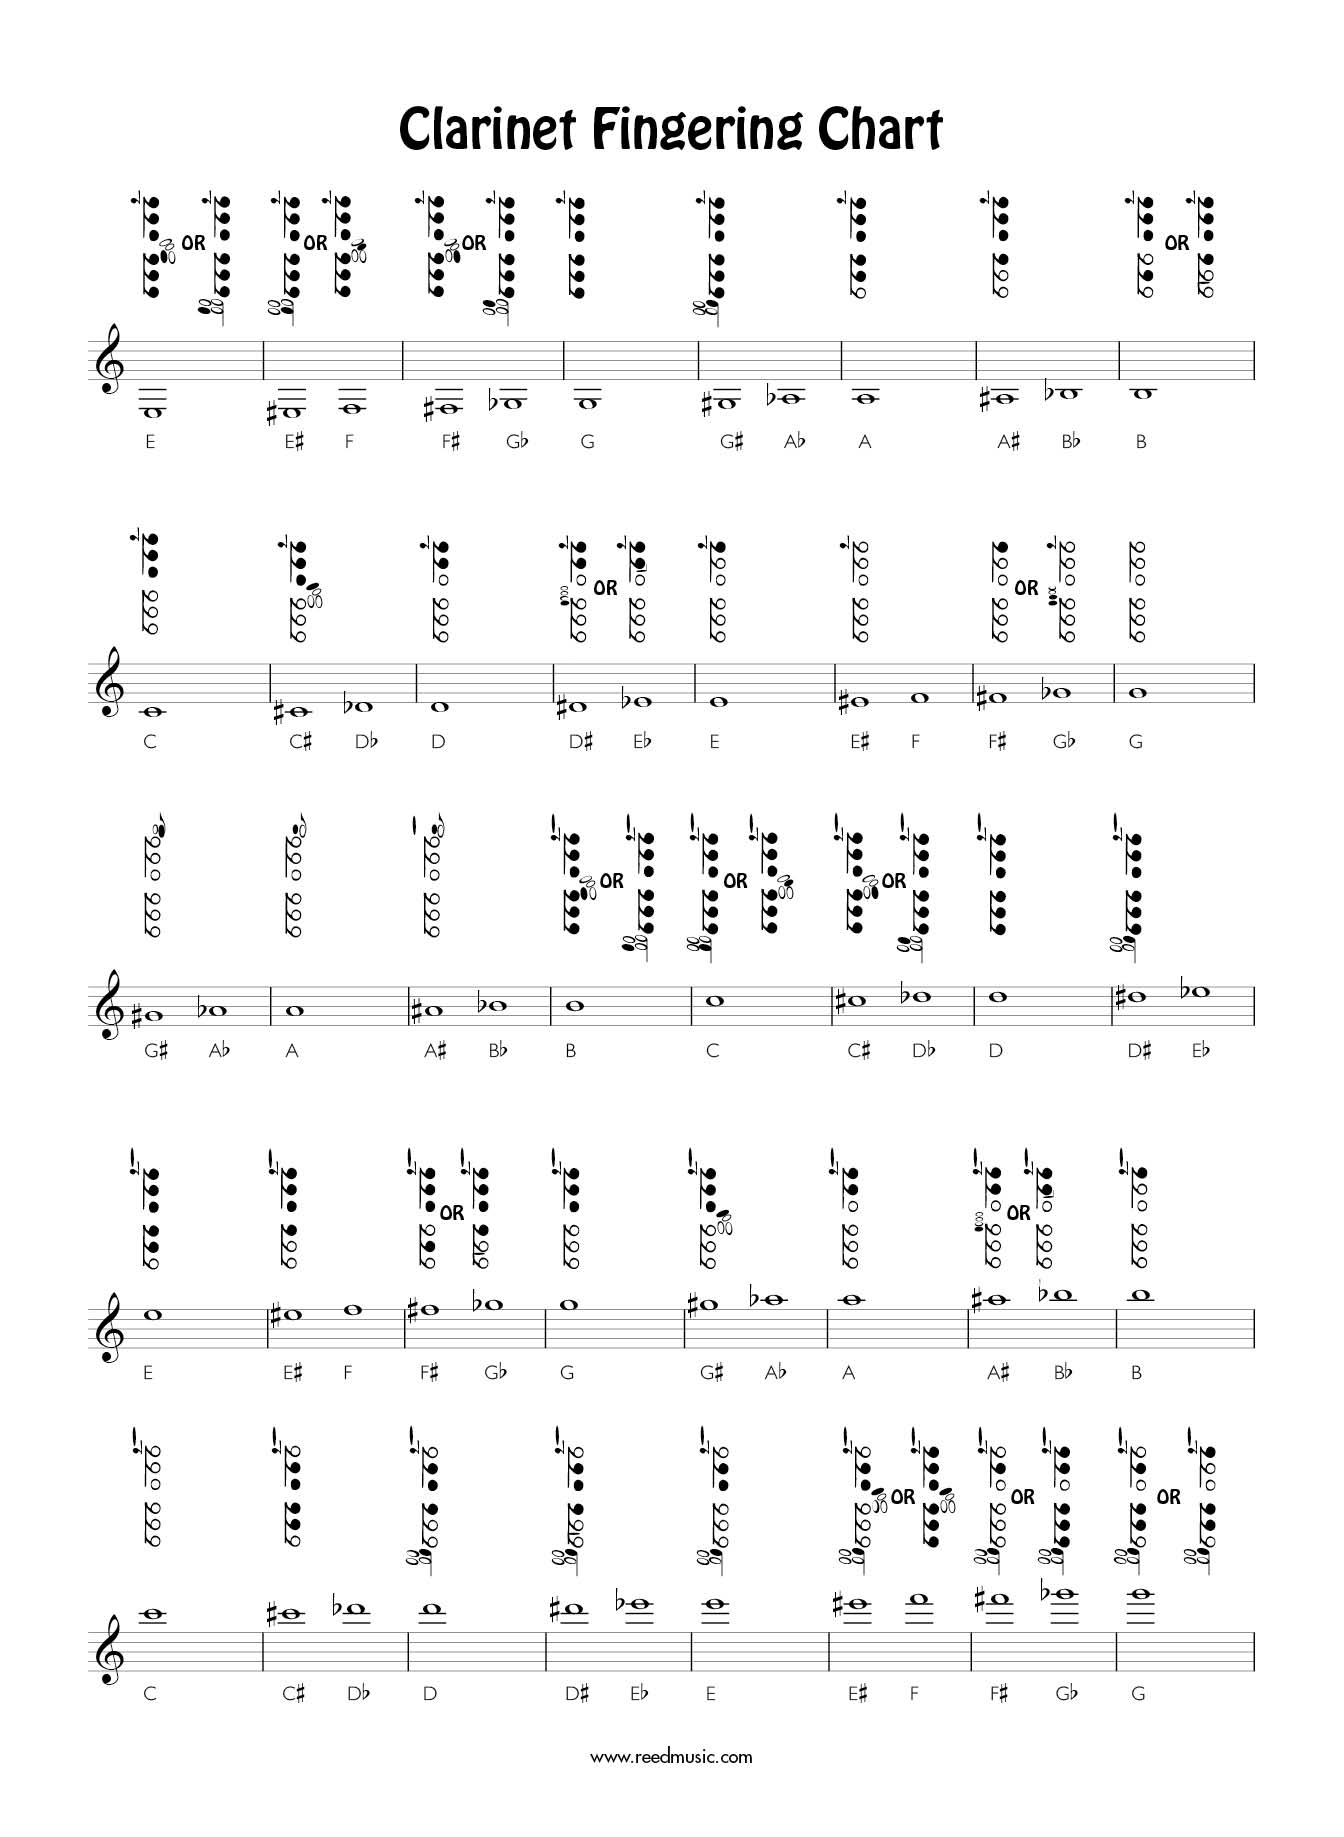 Superb Free Clarinet Fingering Chart